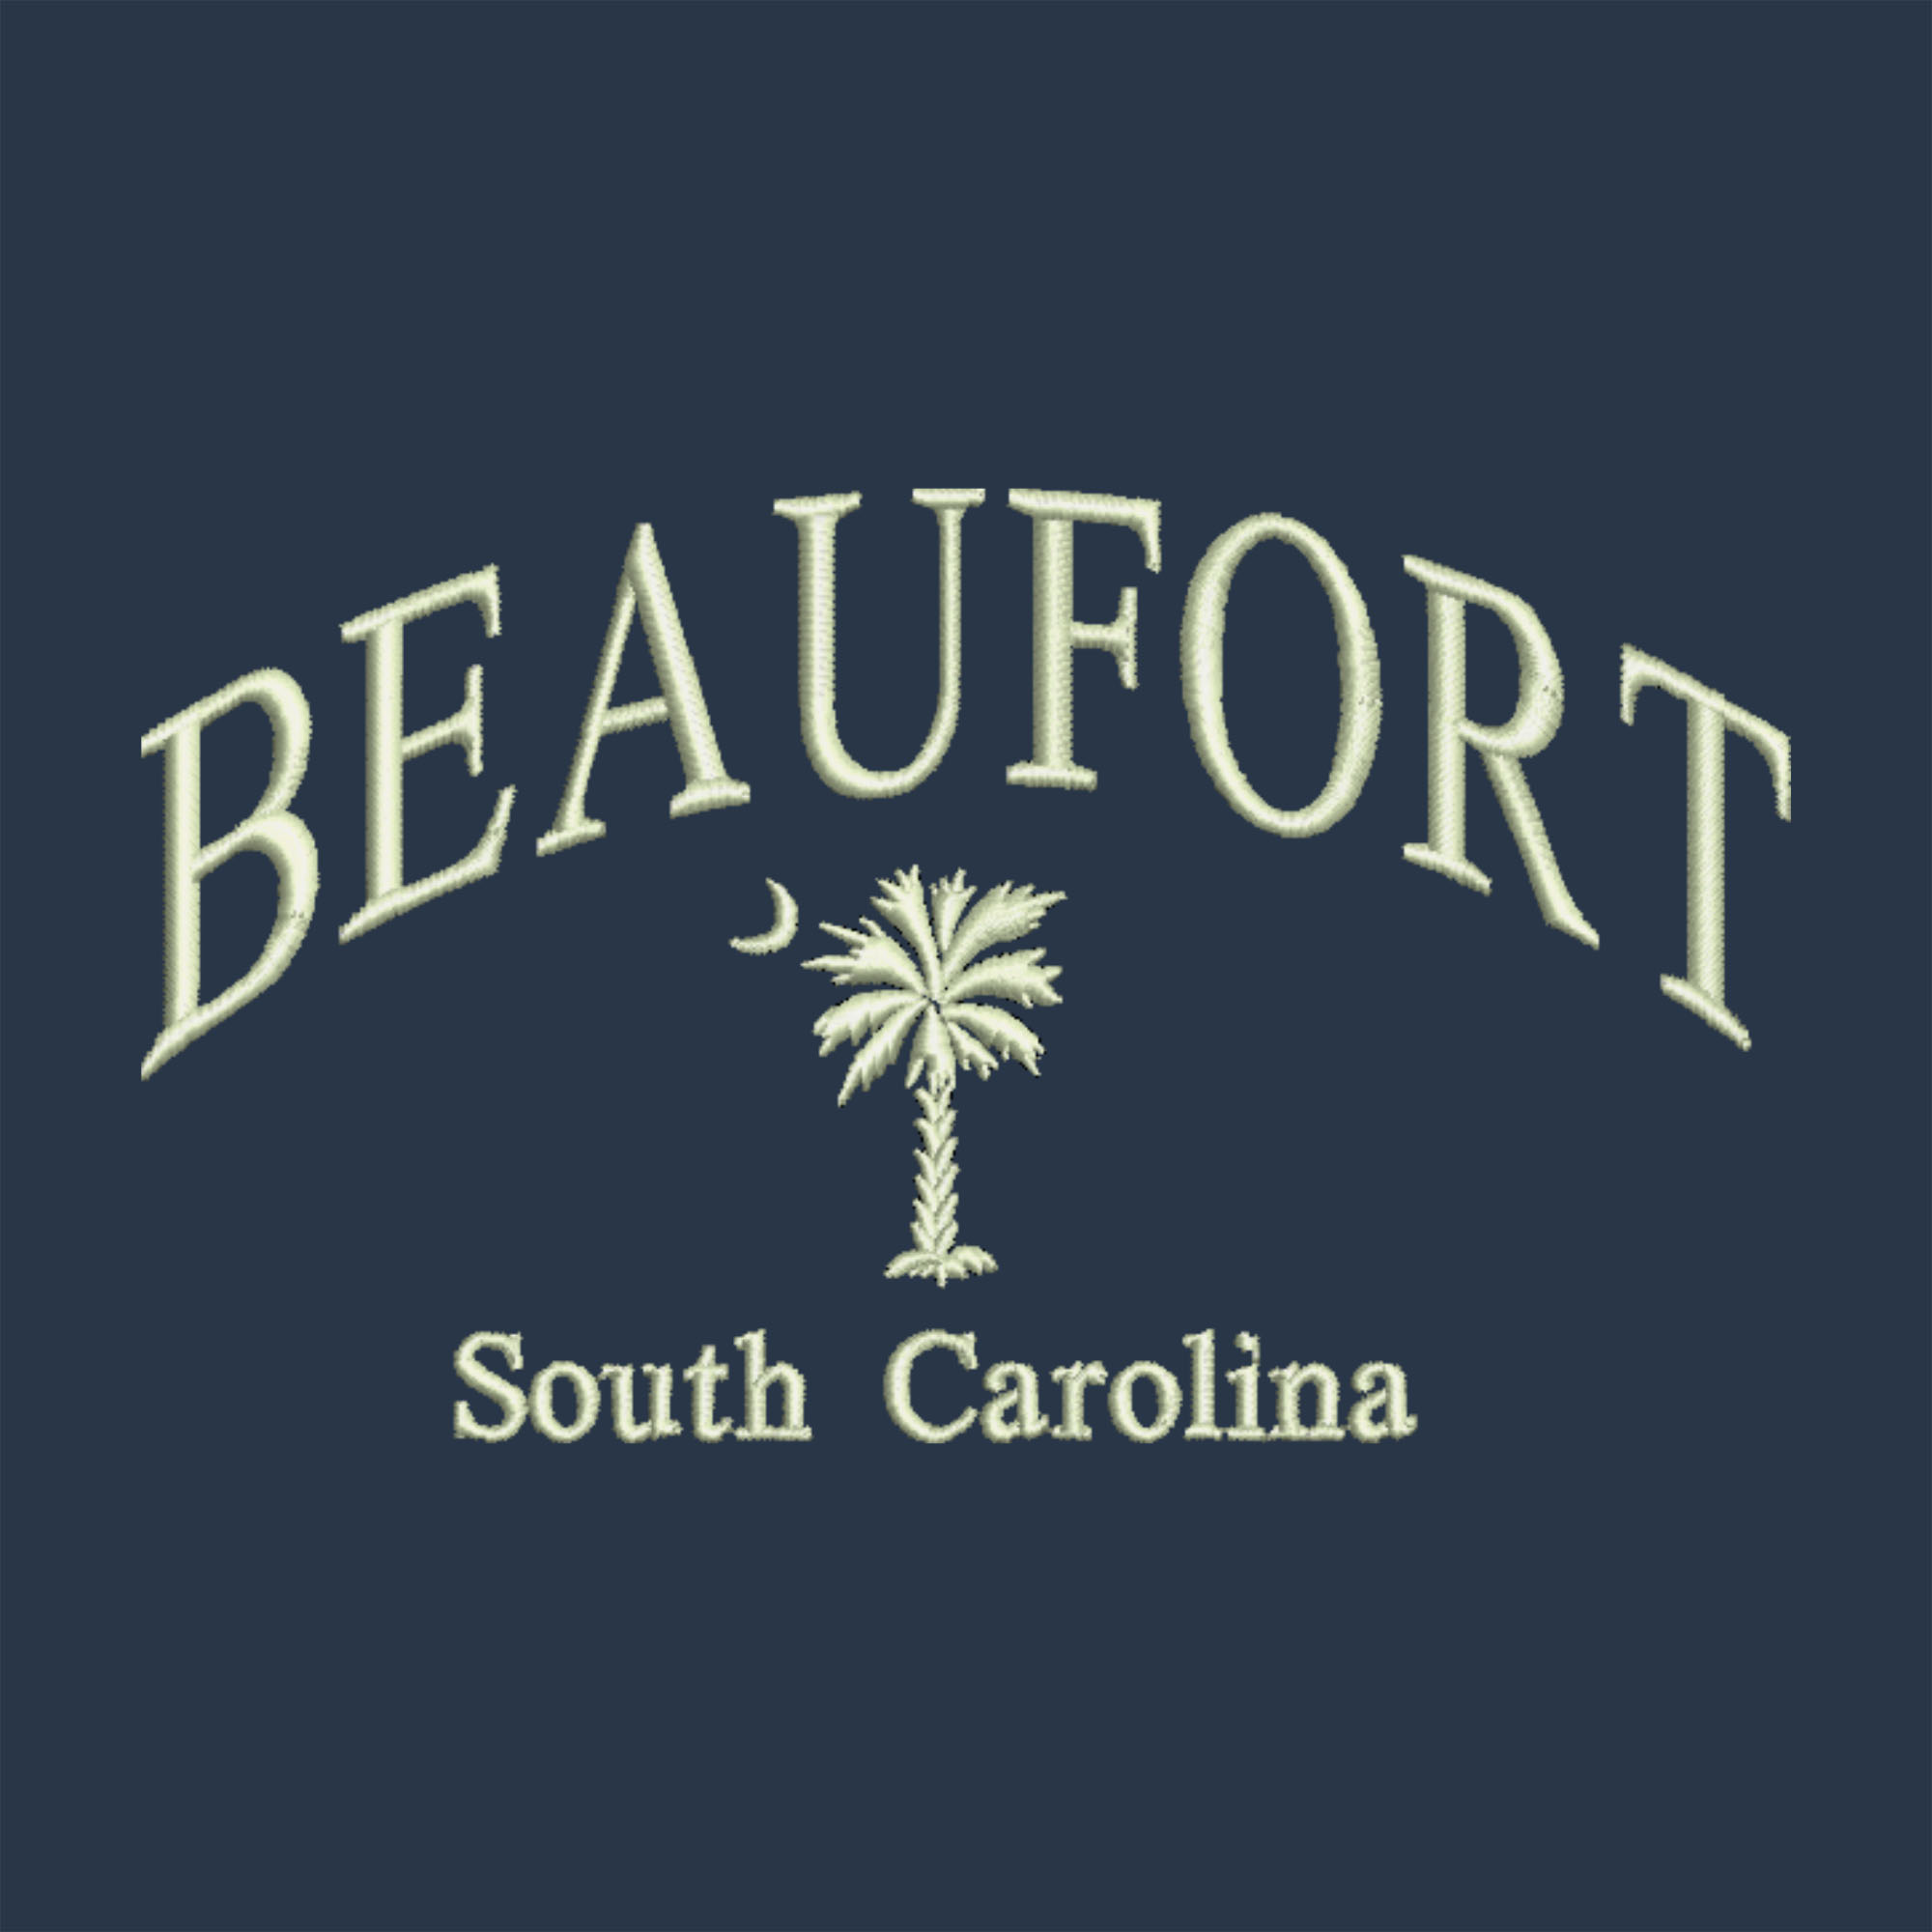 Arched Lettering South Carolina